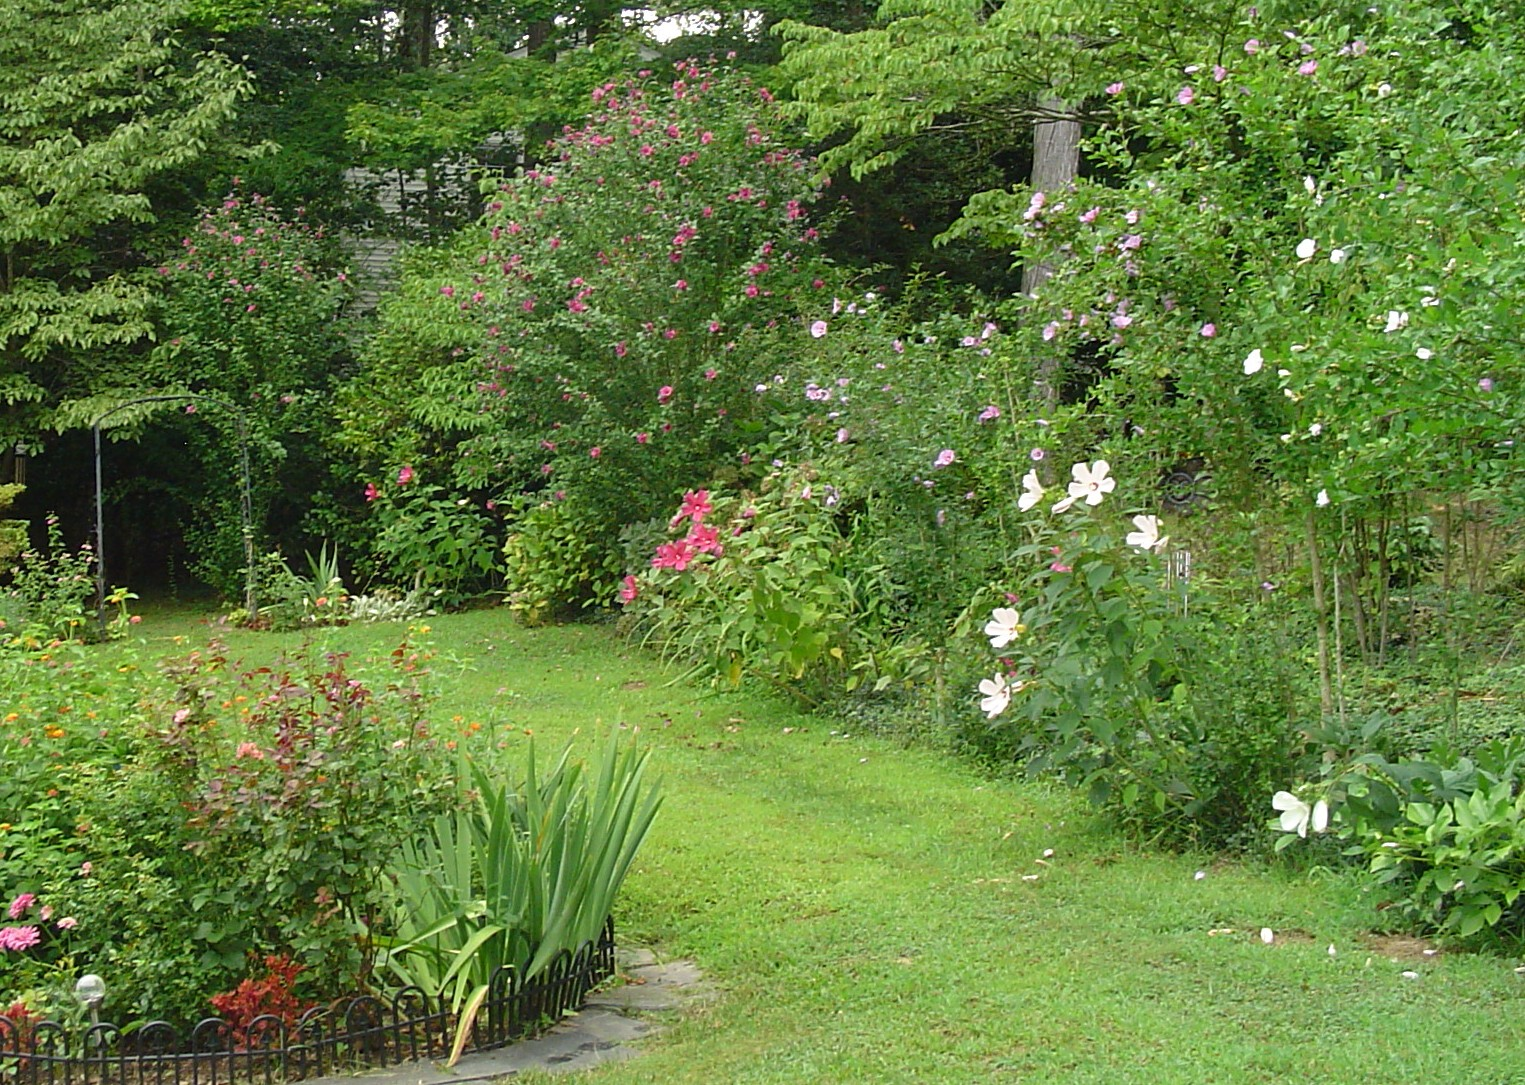 Hardy Hibiscus and Rose of Sharon shrubs dominate this border in late